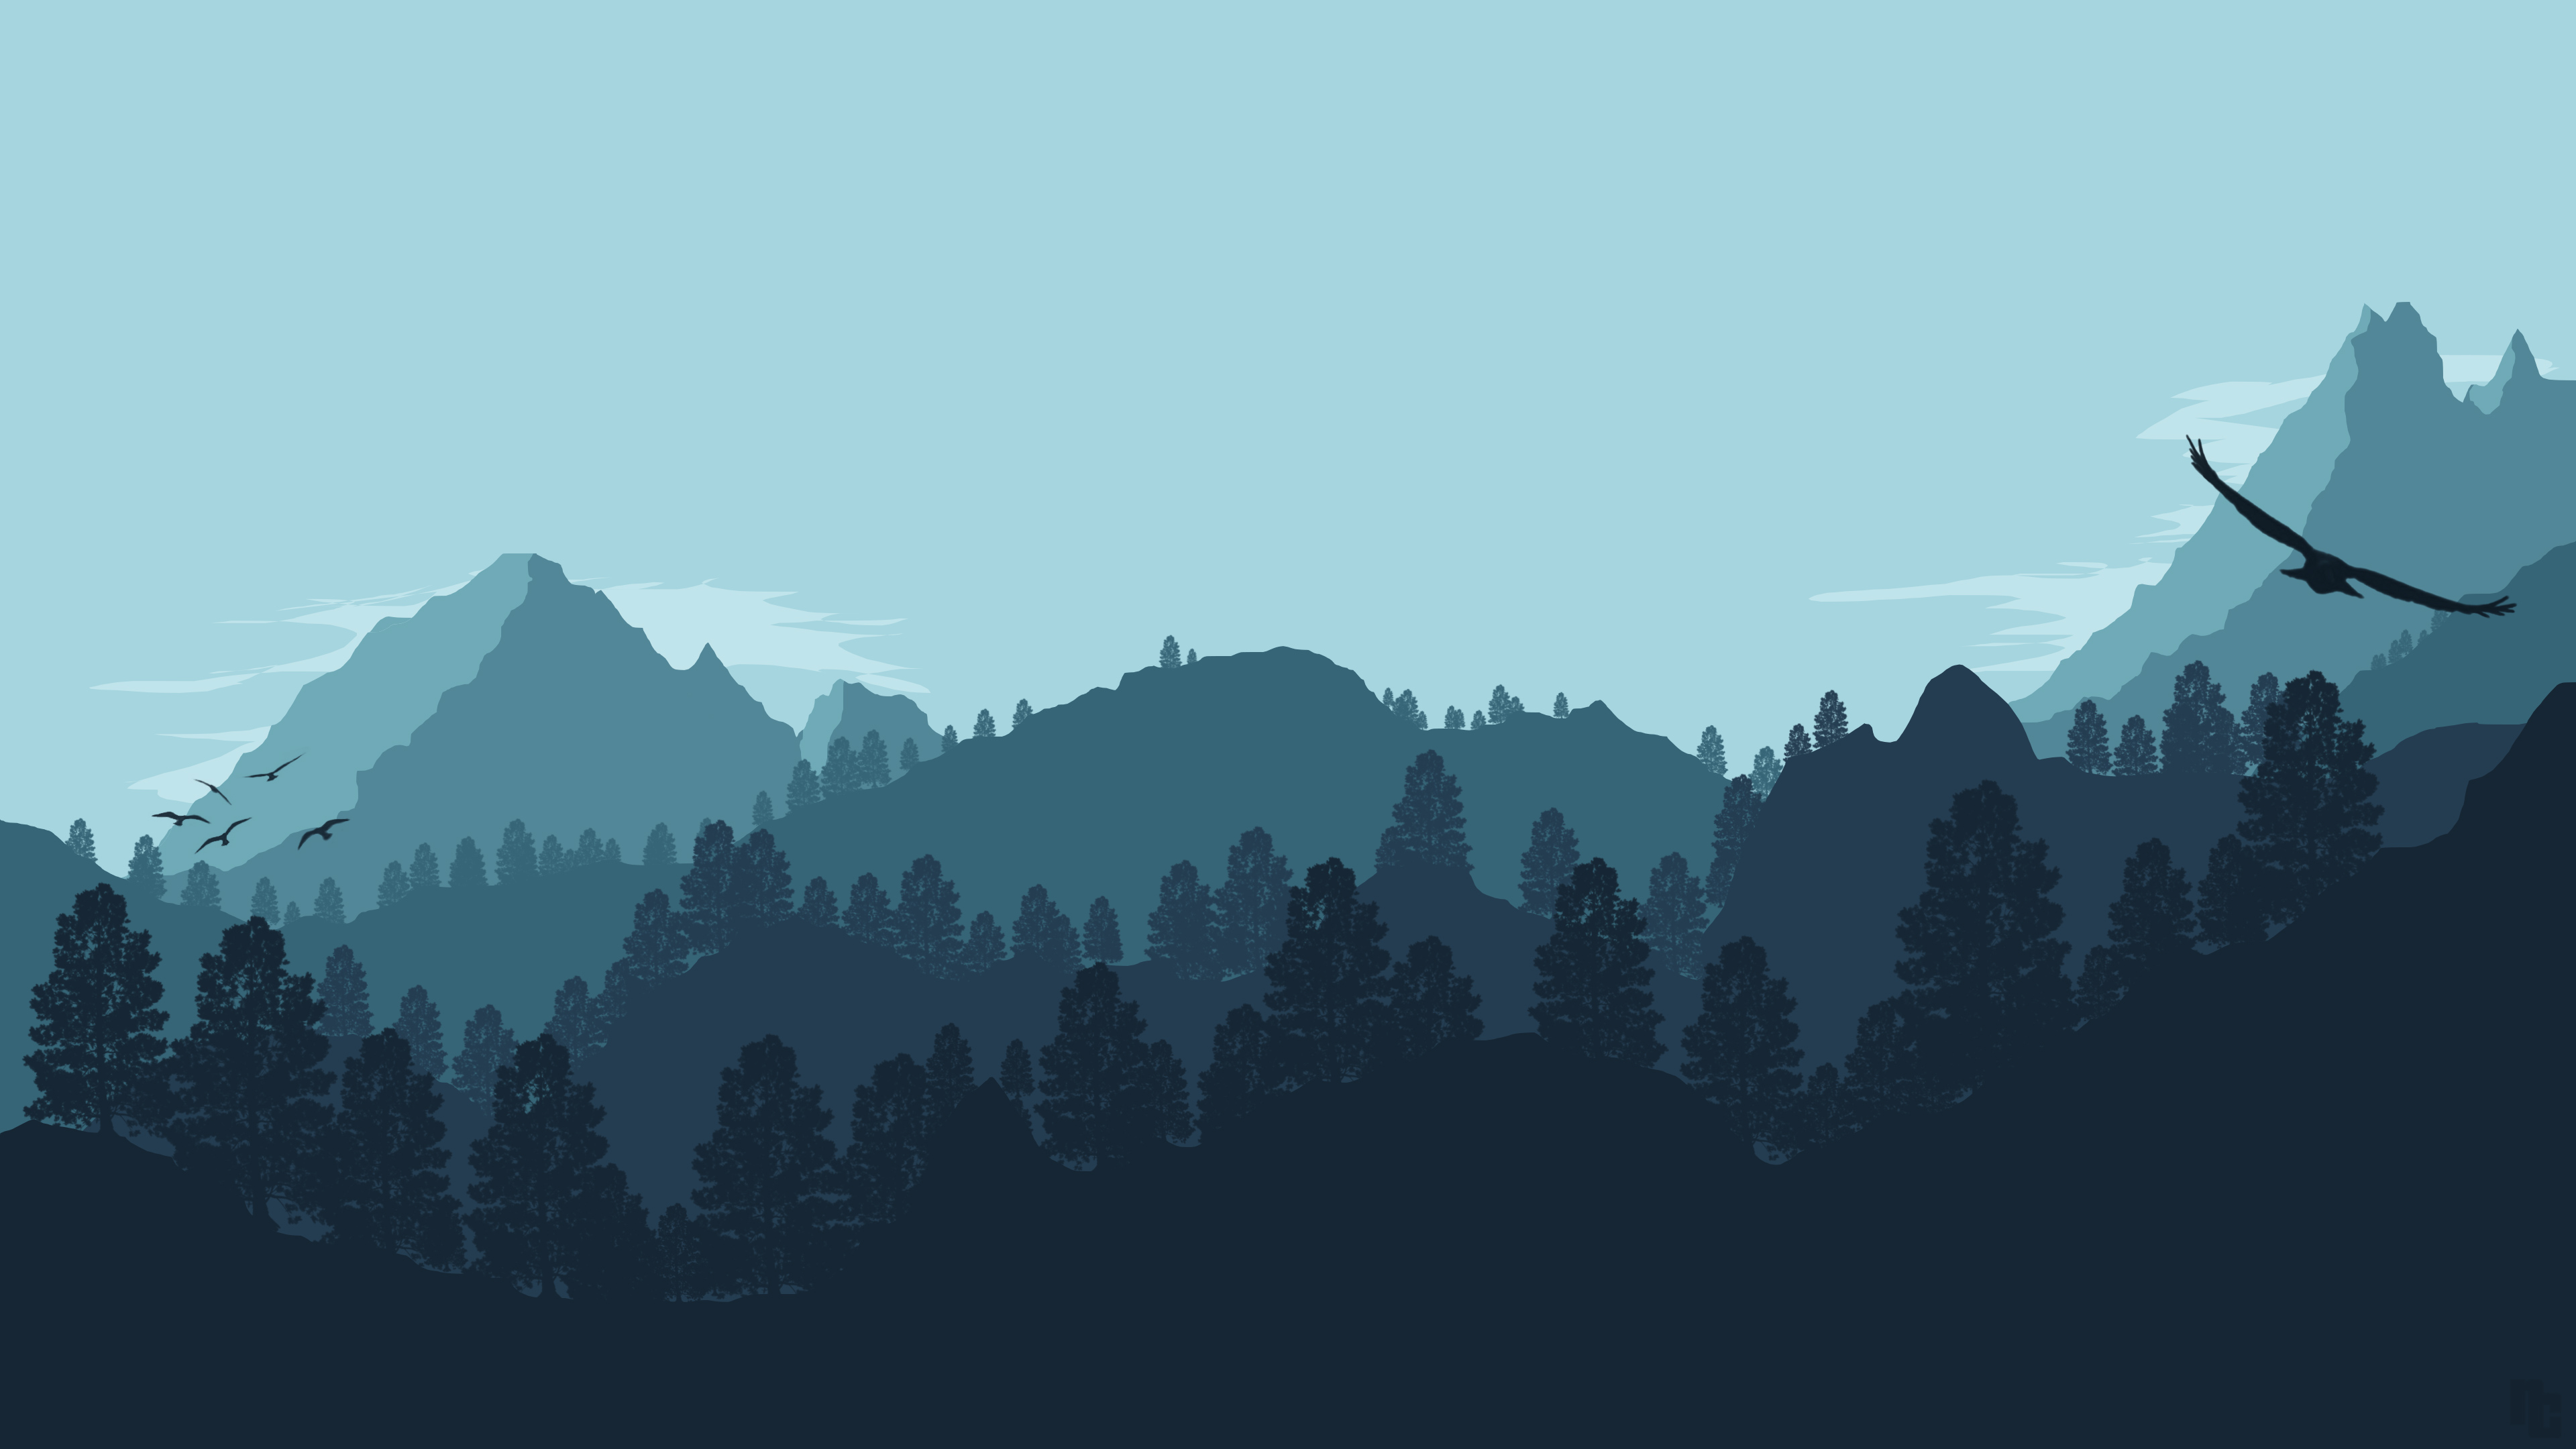 Forest mountain 4k ultra hd wallpaper and background image for Minimal art landscape